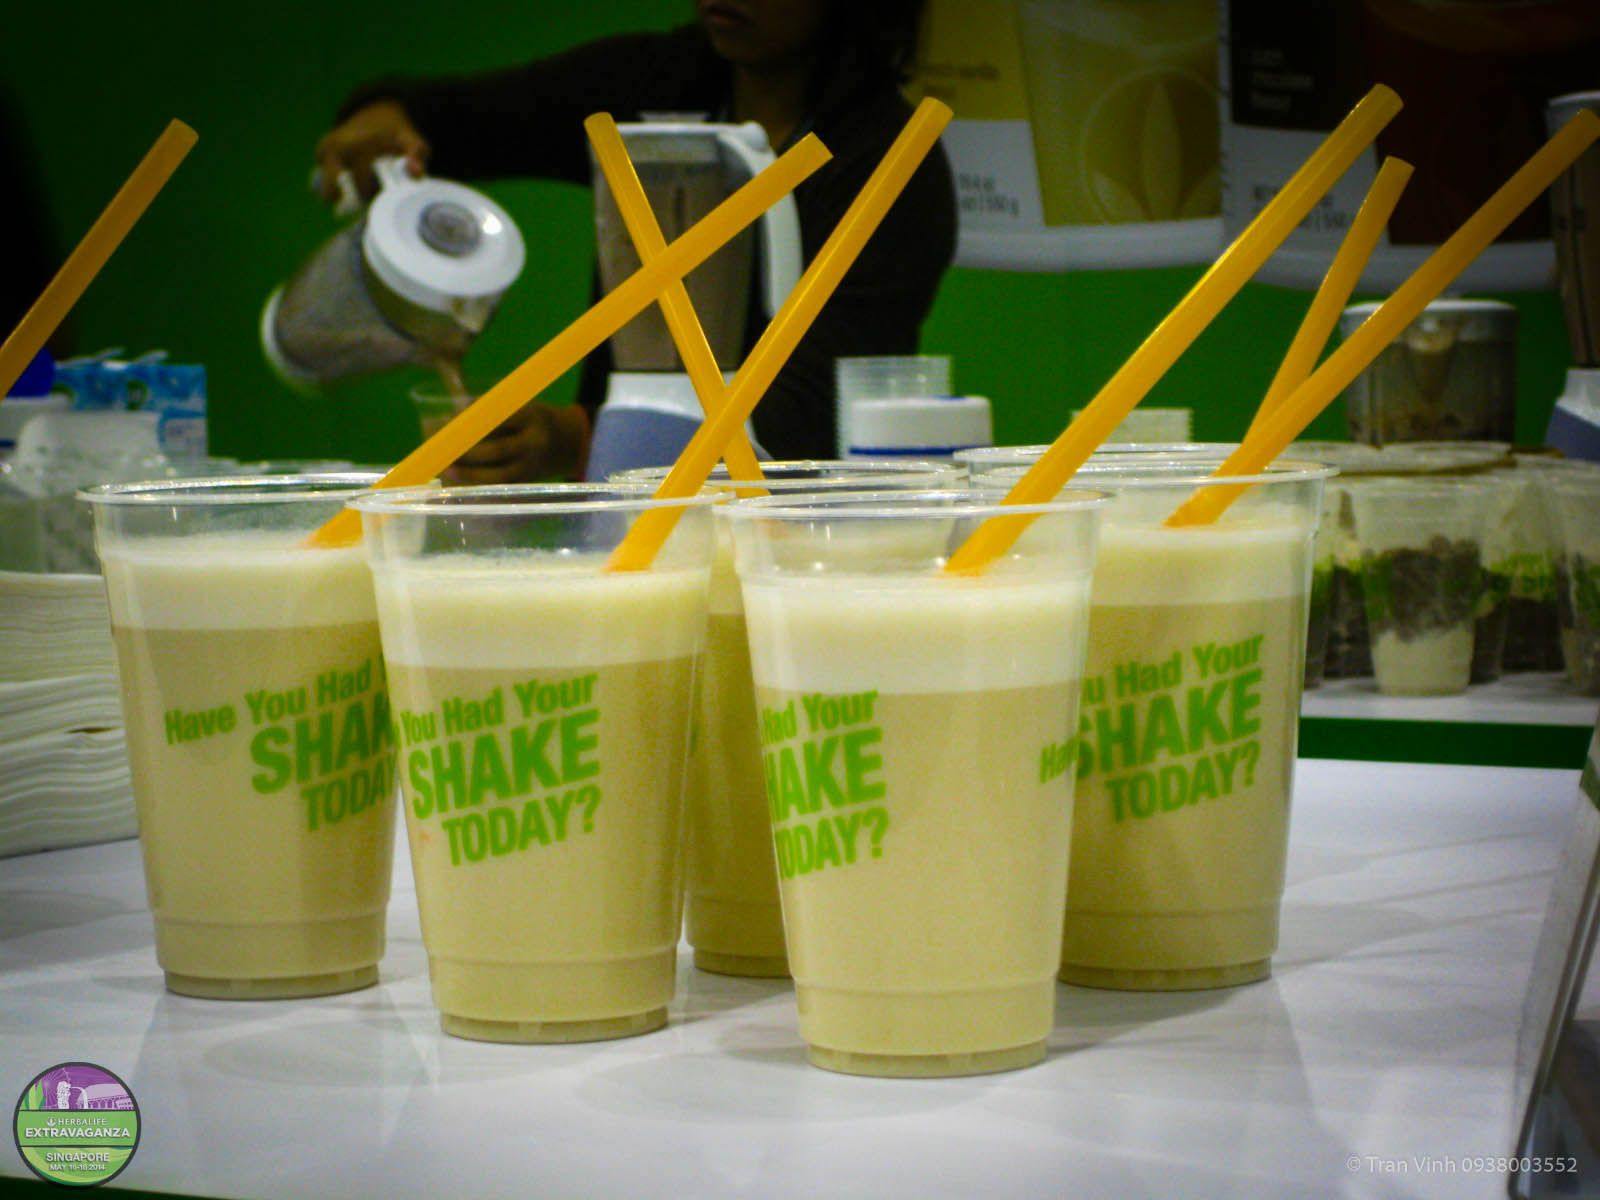 Have you had your shake today? Get healthier or Lose weight, contact me